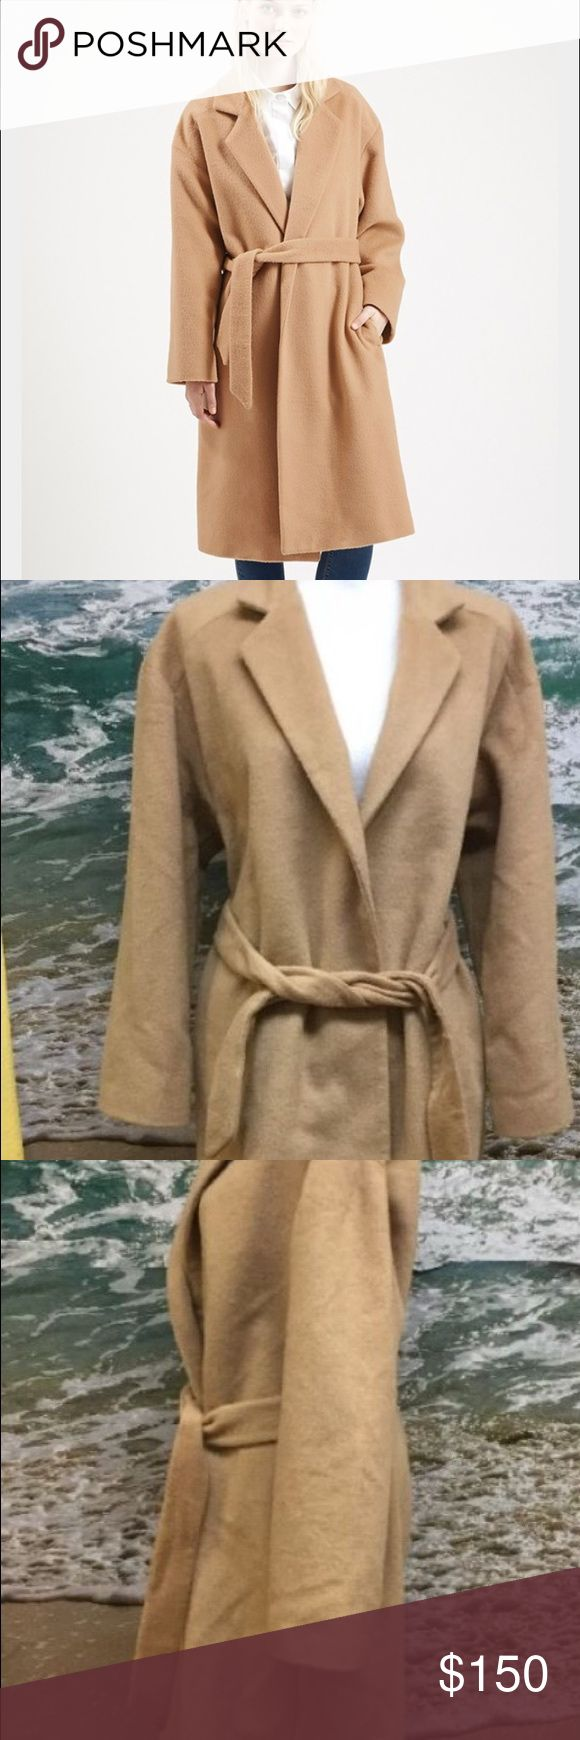 Top shop Moto women's long belted coat Super trendy new camel topshop coat camel color can be worn open or belted around waist barely worn great condition Topshop Jackets & Coats